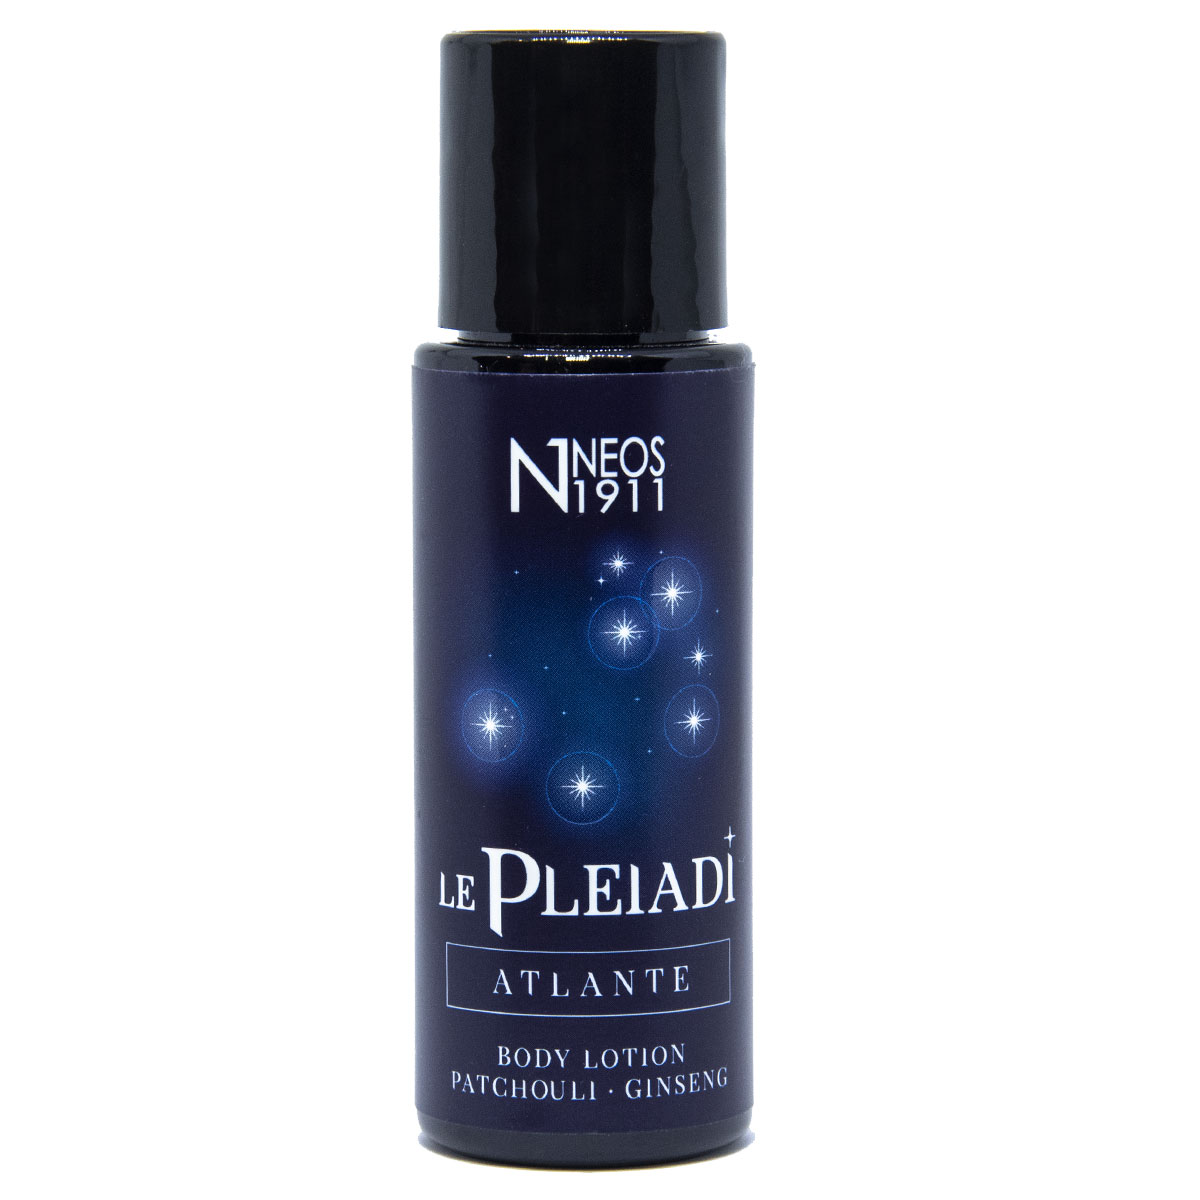 NEOS 1911 LE PLEIADI Le Pleiadi Atlante Patchouli & Ginseng Body Lotion 50 ml